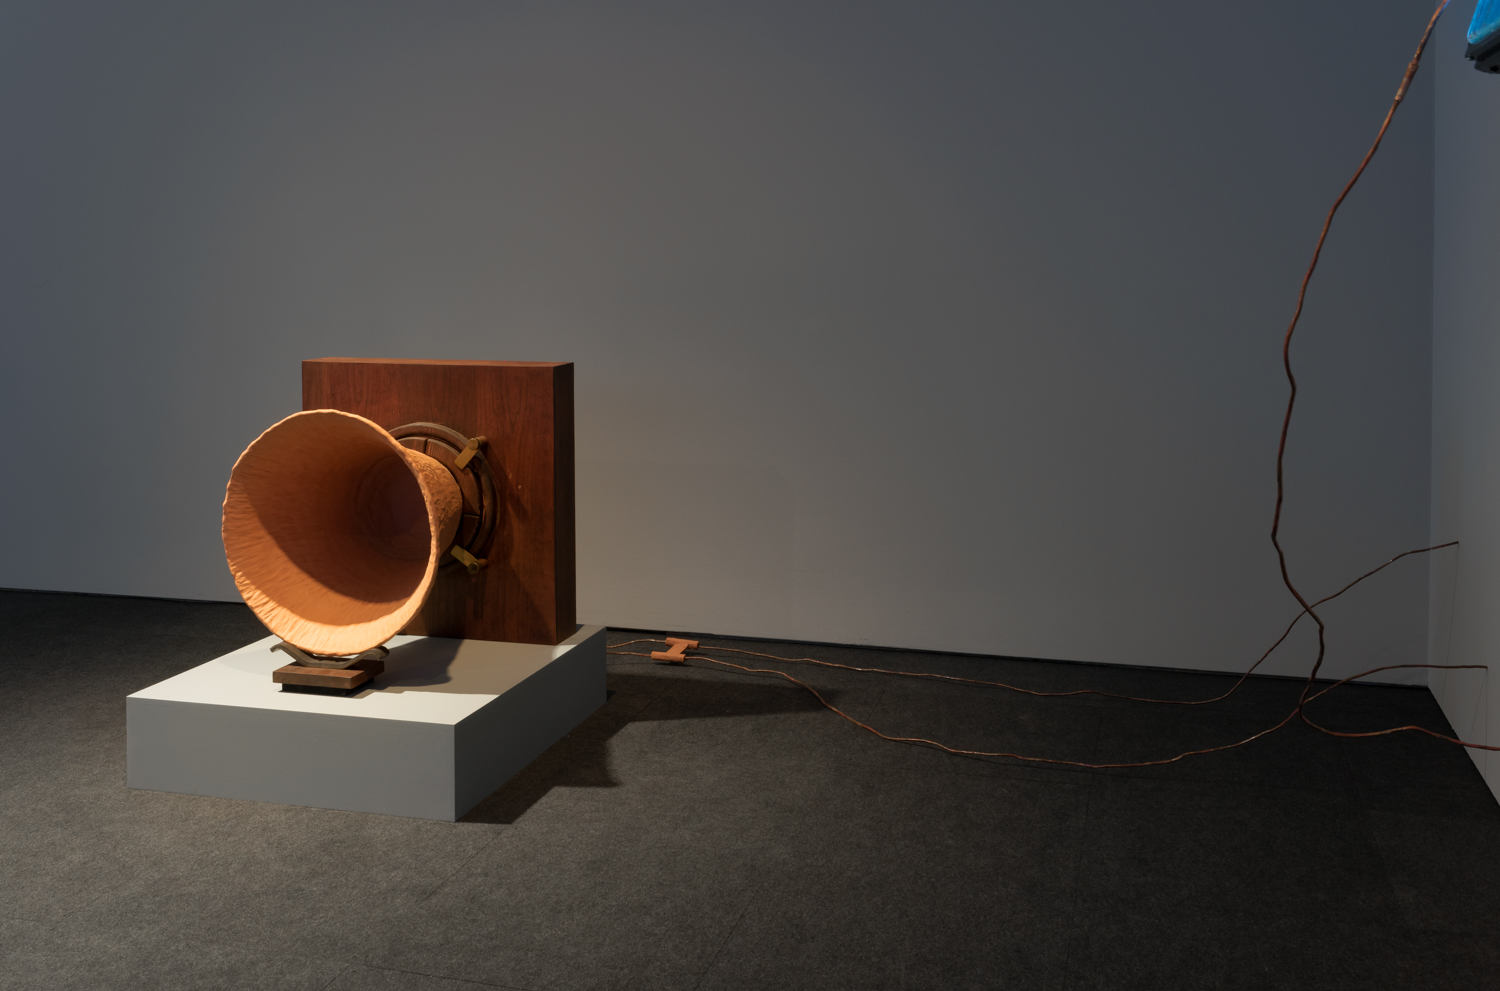 Conduct Matters, Hammer Project, Hammer Museum, Los Angeles. Visible:  Matter-phone , 2016, Terracotta, wood, metal, and copper wire, 25 x 24 x 21 inches, wire variable.